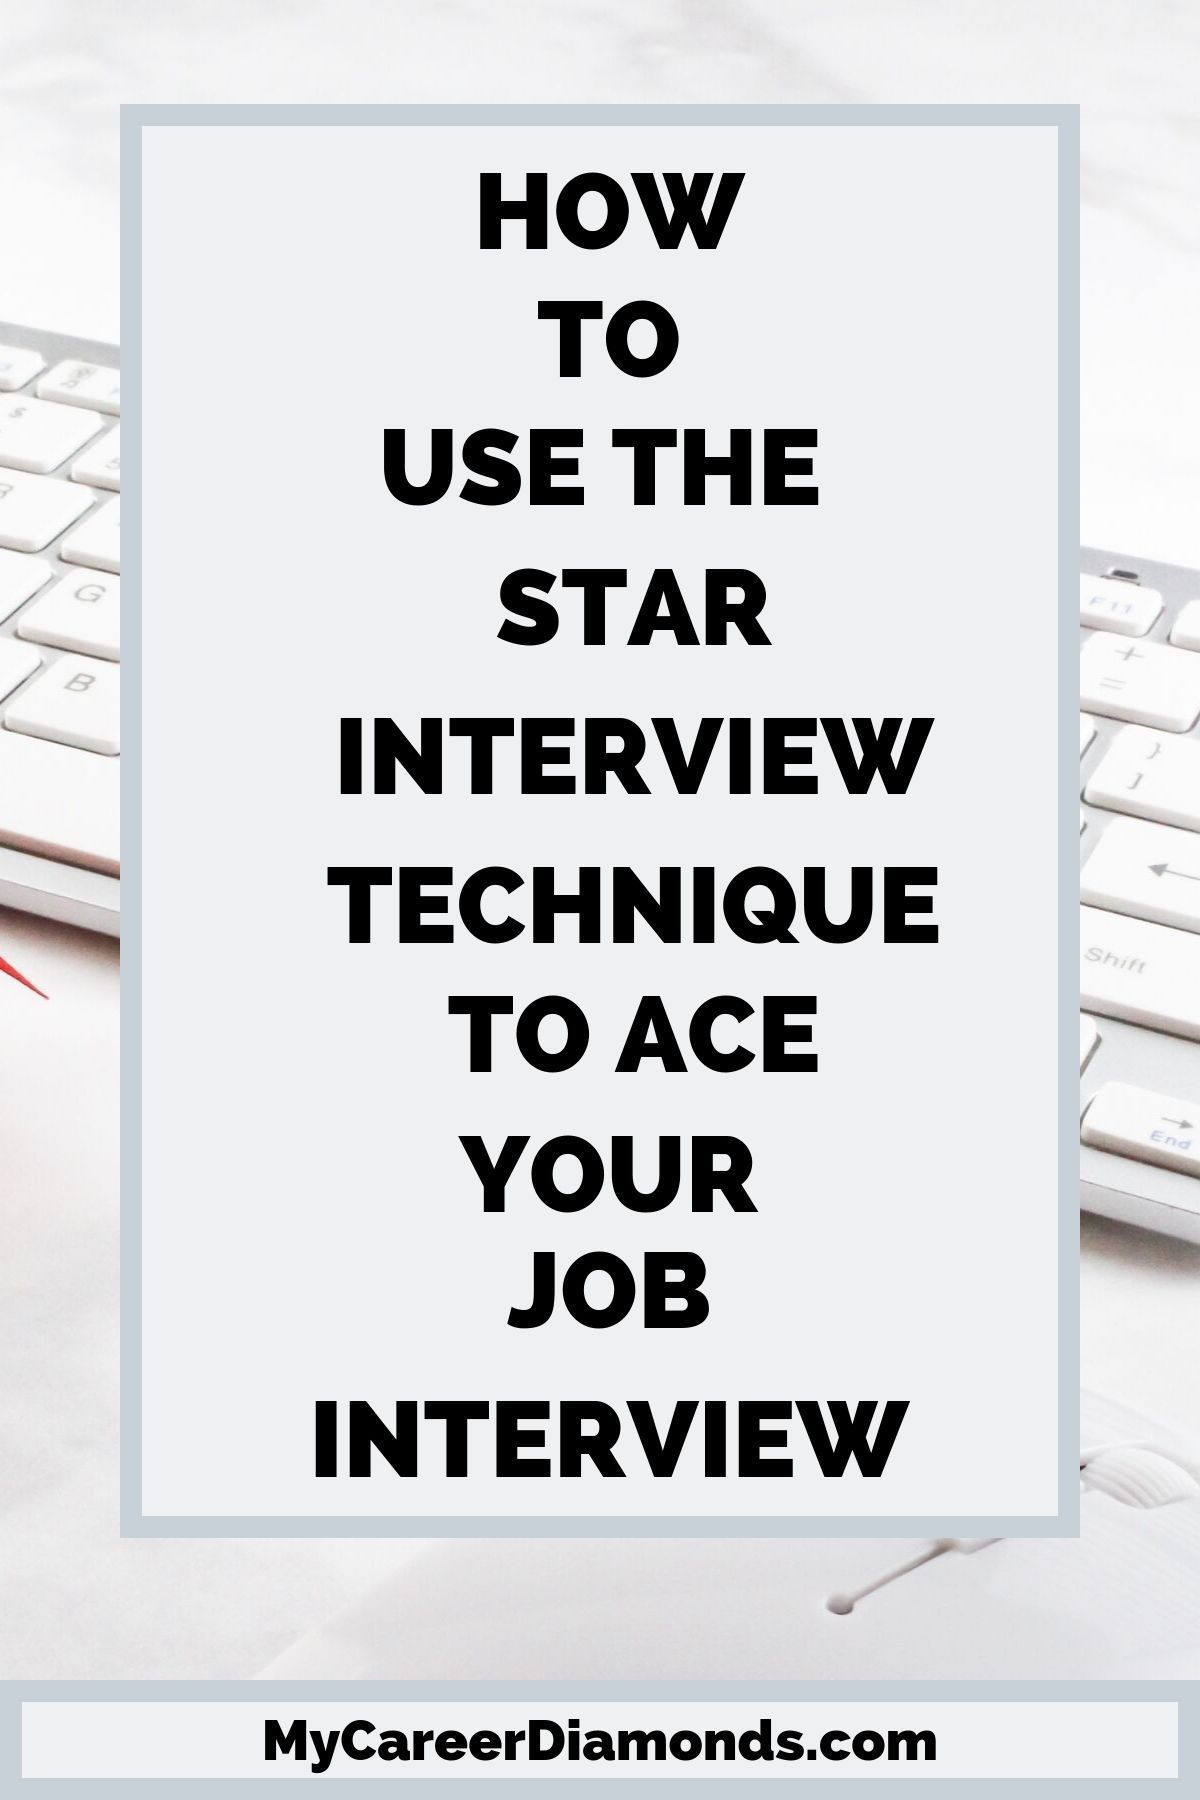 How to use the star interview technique to ace your job